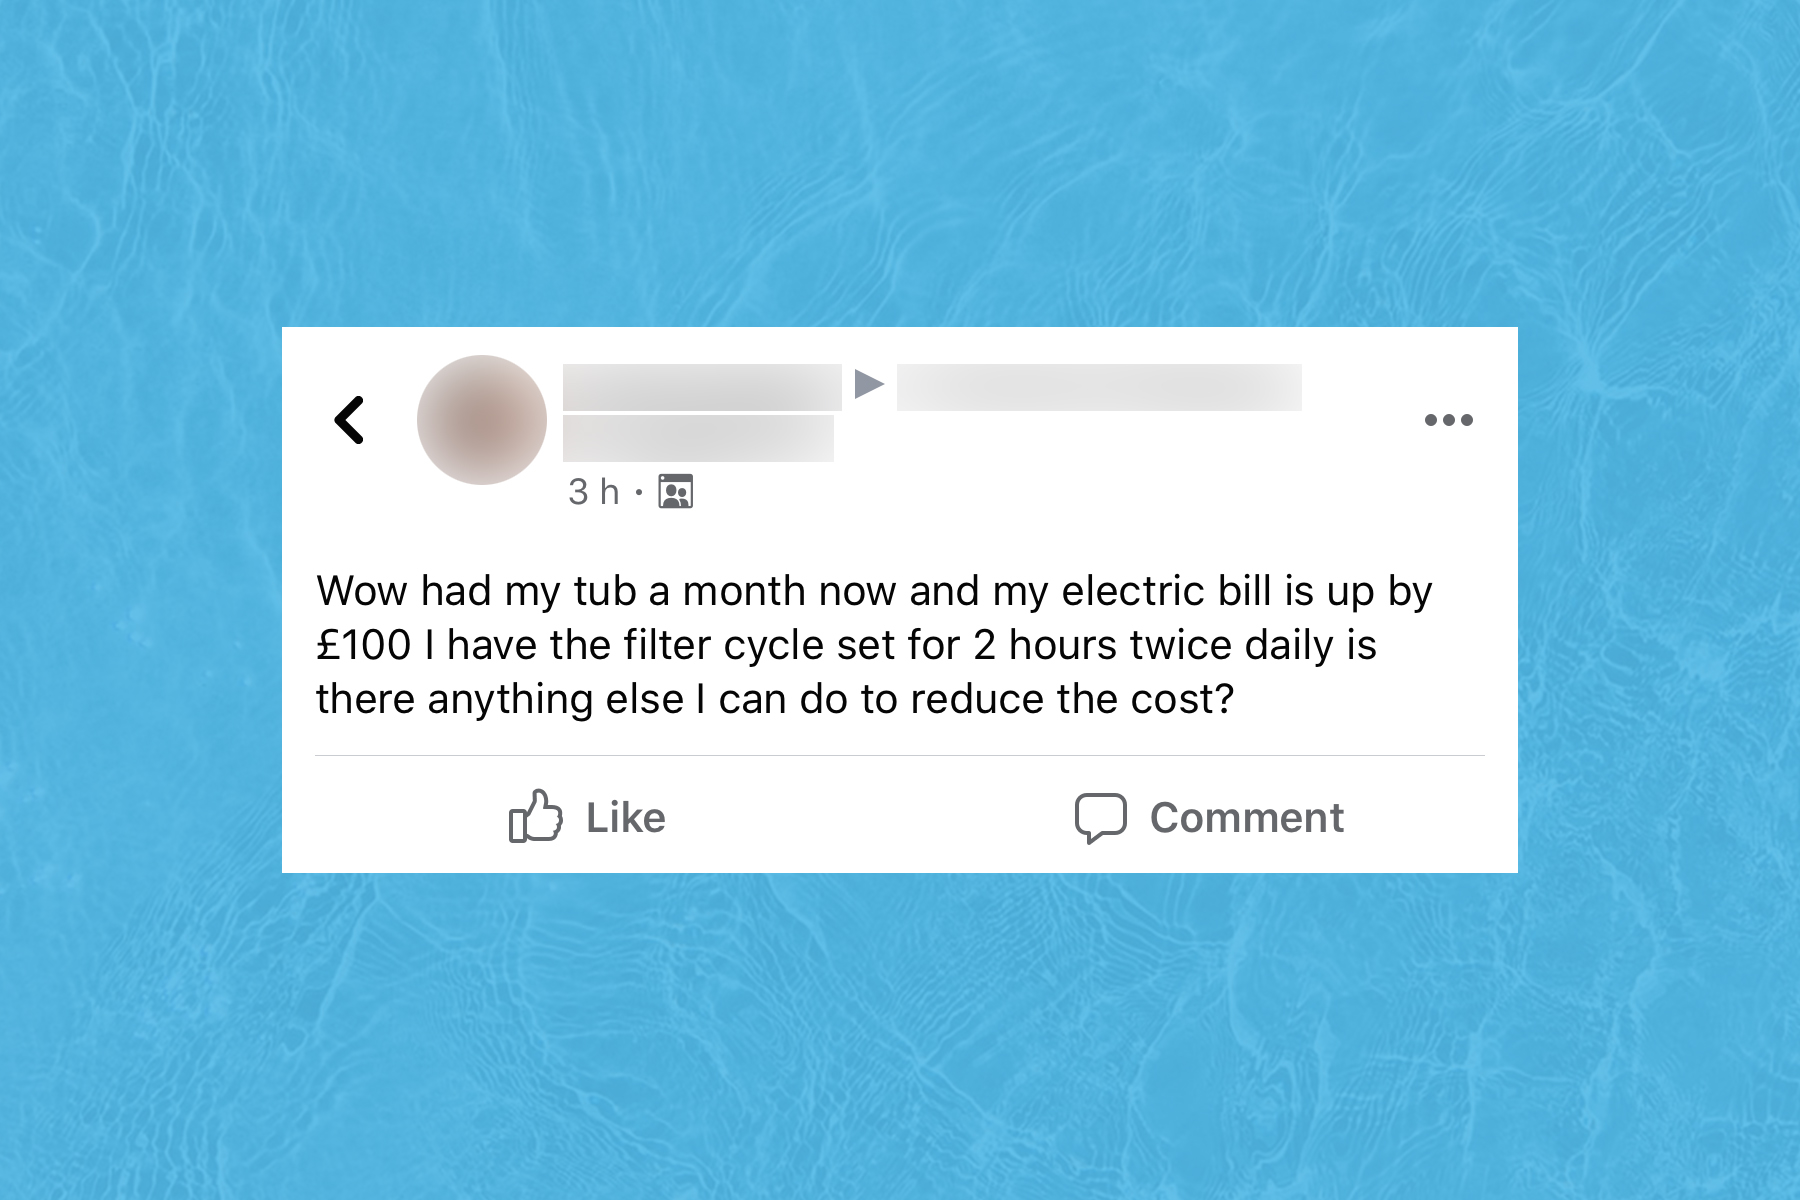 Screenshot of Facebook post asking how to reduce expensive hot tub running costs.